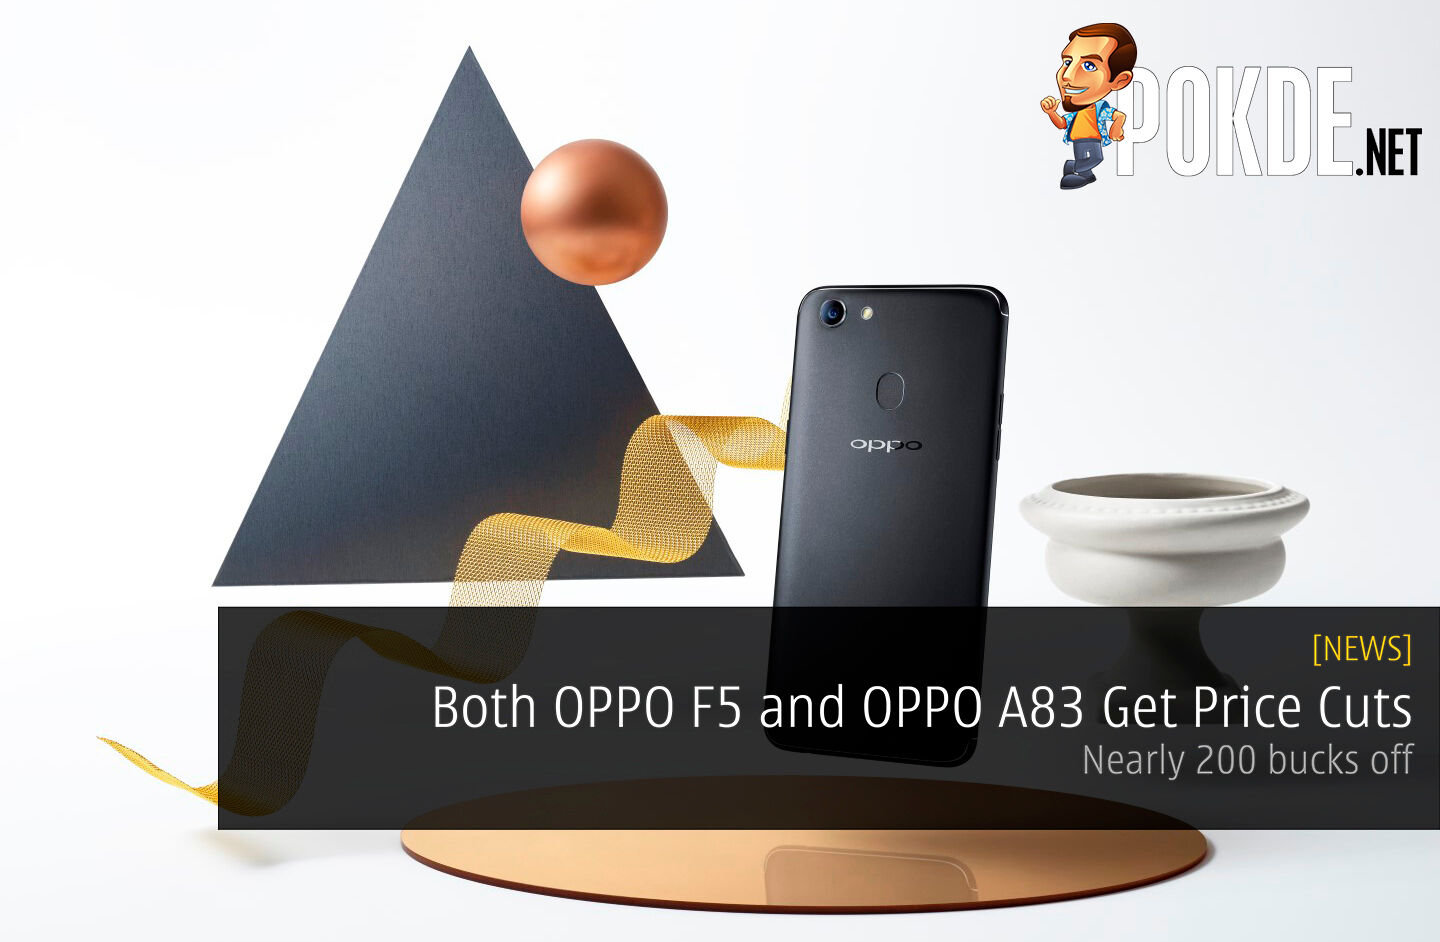 Both OPPO F5 and OPPO A83 Get Price Cuts - Nearly 200 bucks off 21